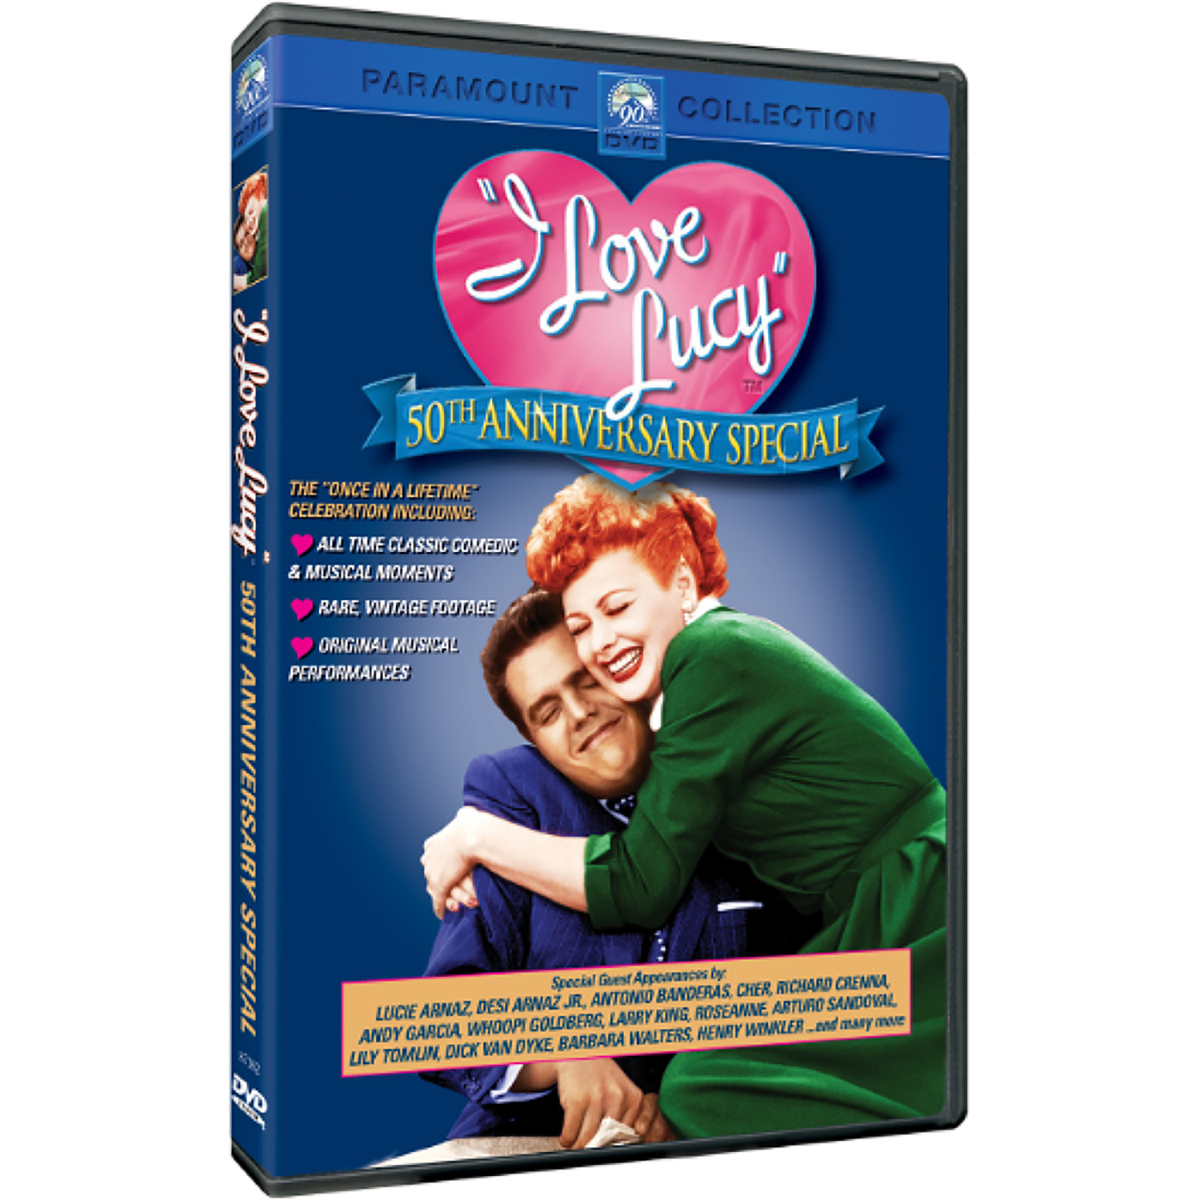 I Love Lucy: 50th Anniversary Special (2001) DVD -  DVDs & Videos 6445-319757